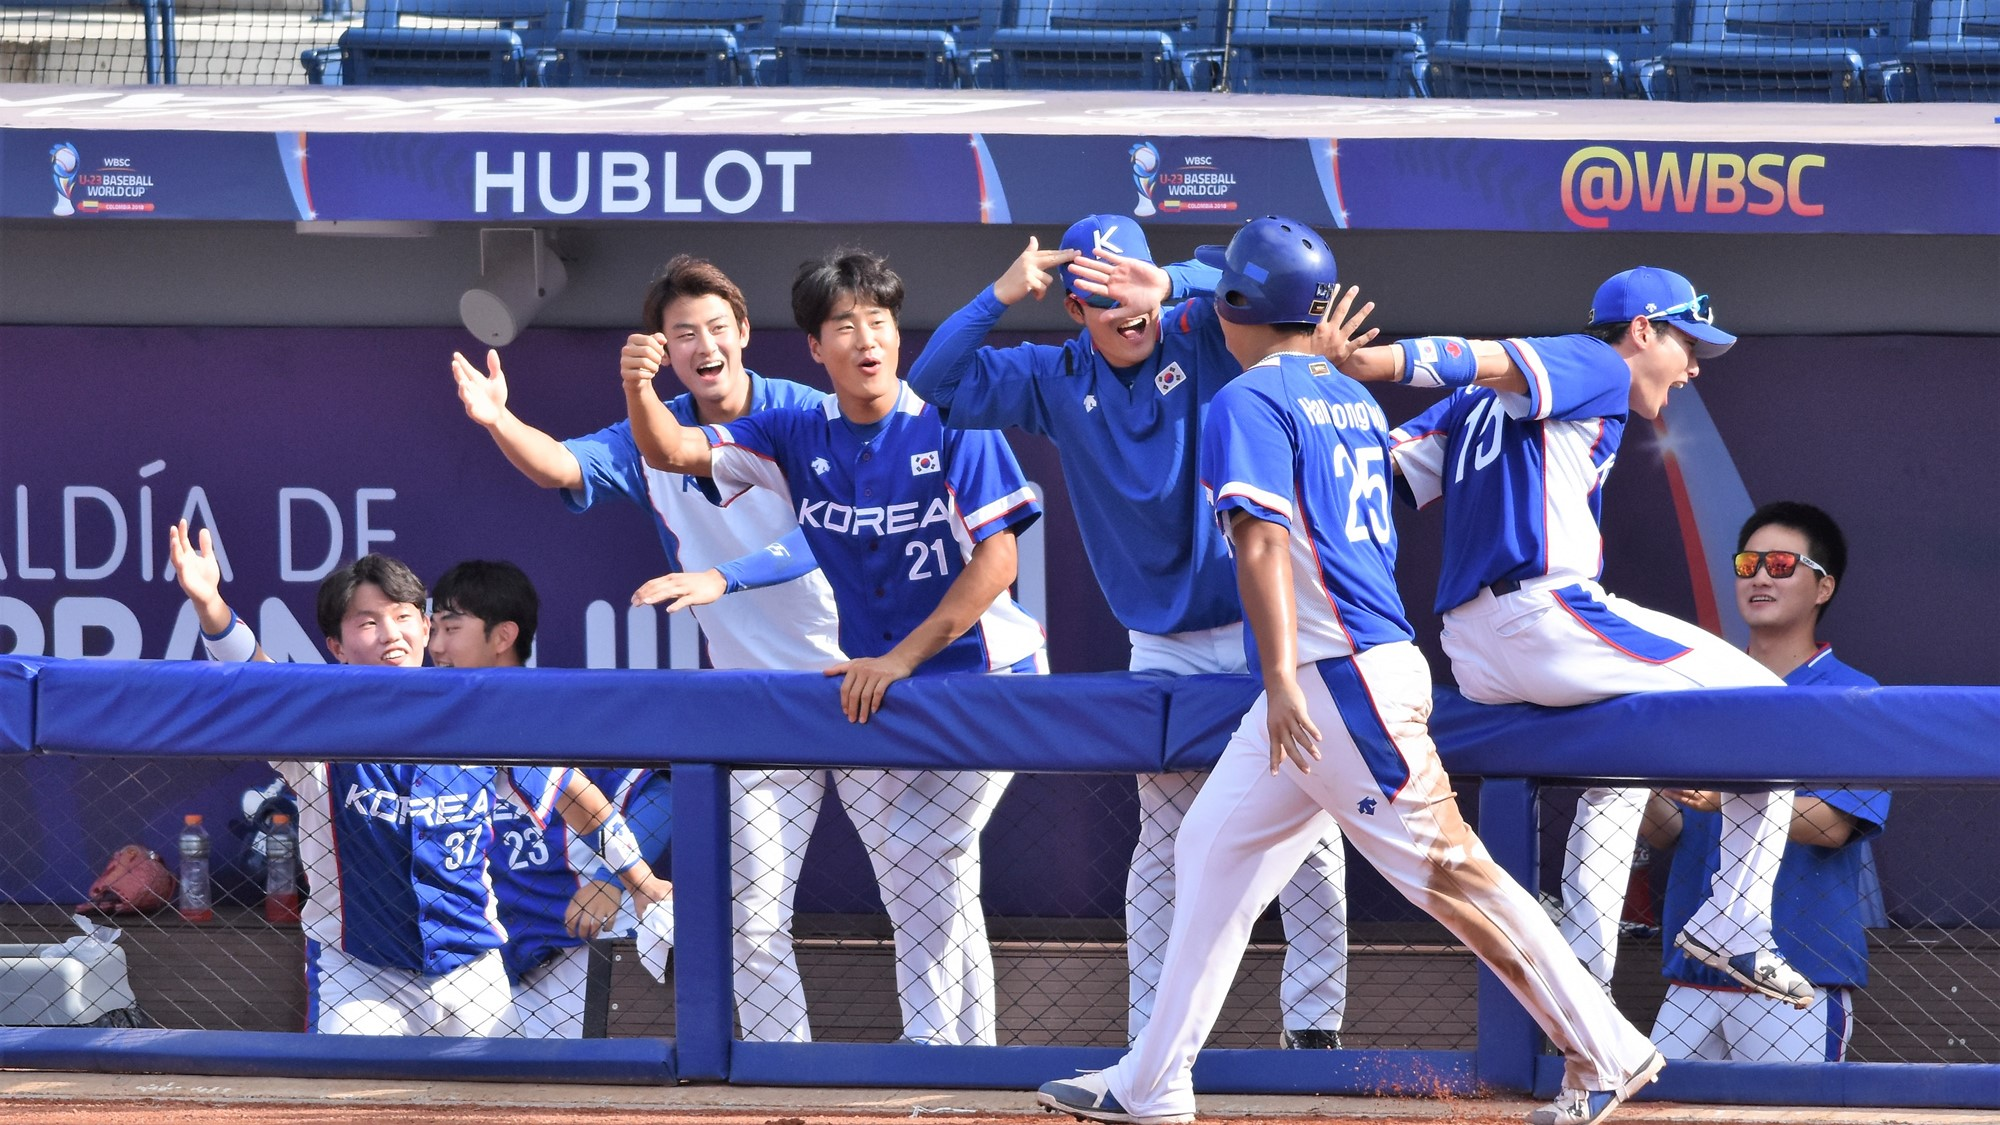 The bronze medal game is tied at four, Korea's dug out explodes with joy